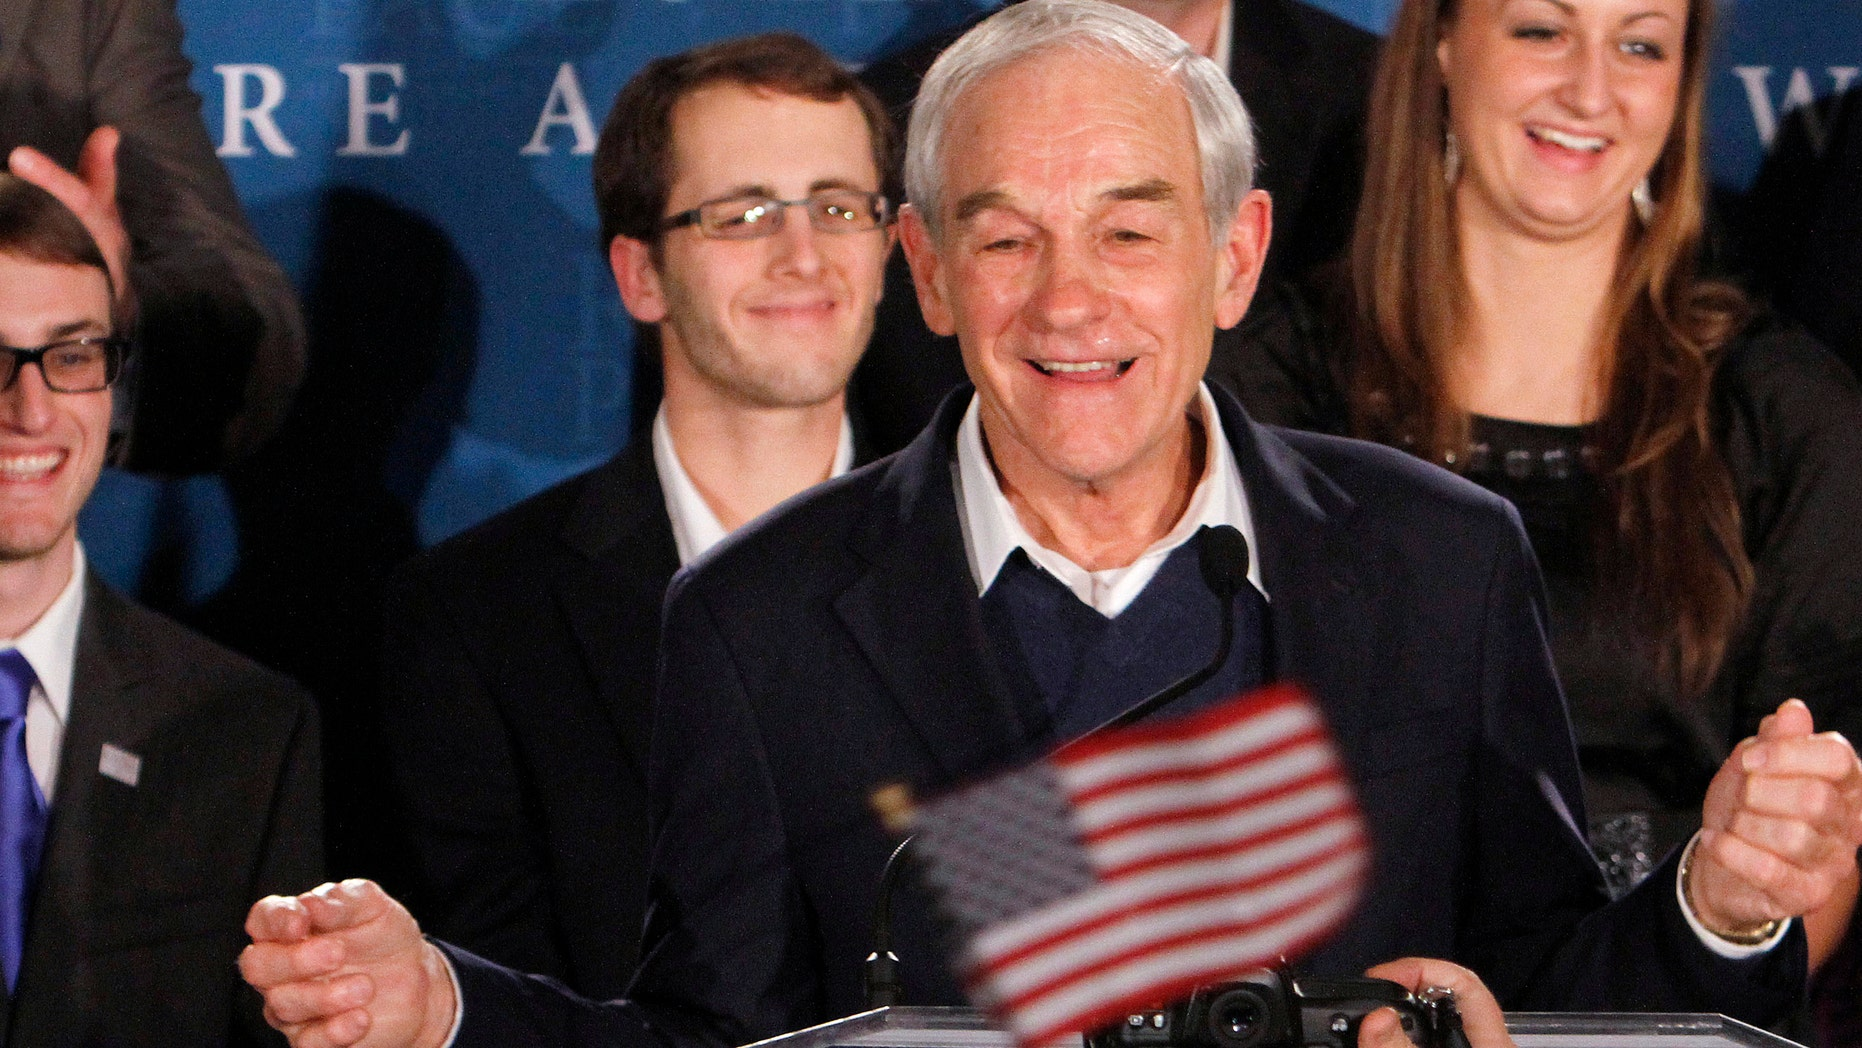 Republican presidential candidate, Rep. Ron Paul, R-Texas, speaks to supporters during an election night really in Manchester, N.H., Tuesday, Jan. 10, 2012.  (AP Photo/Bill Sikes)